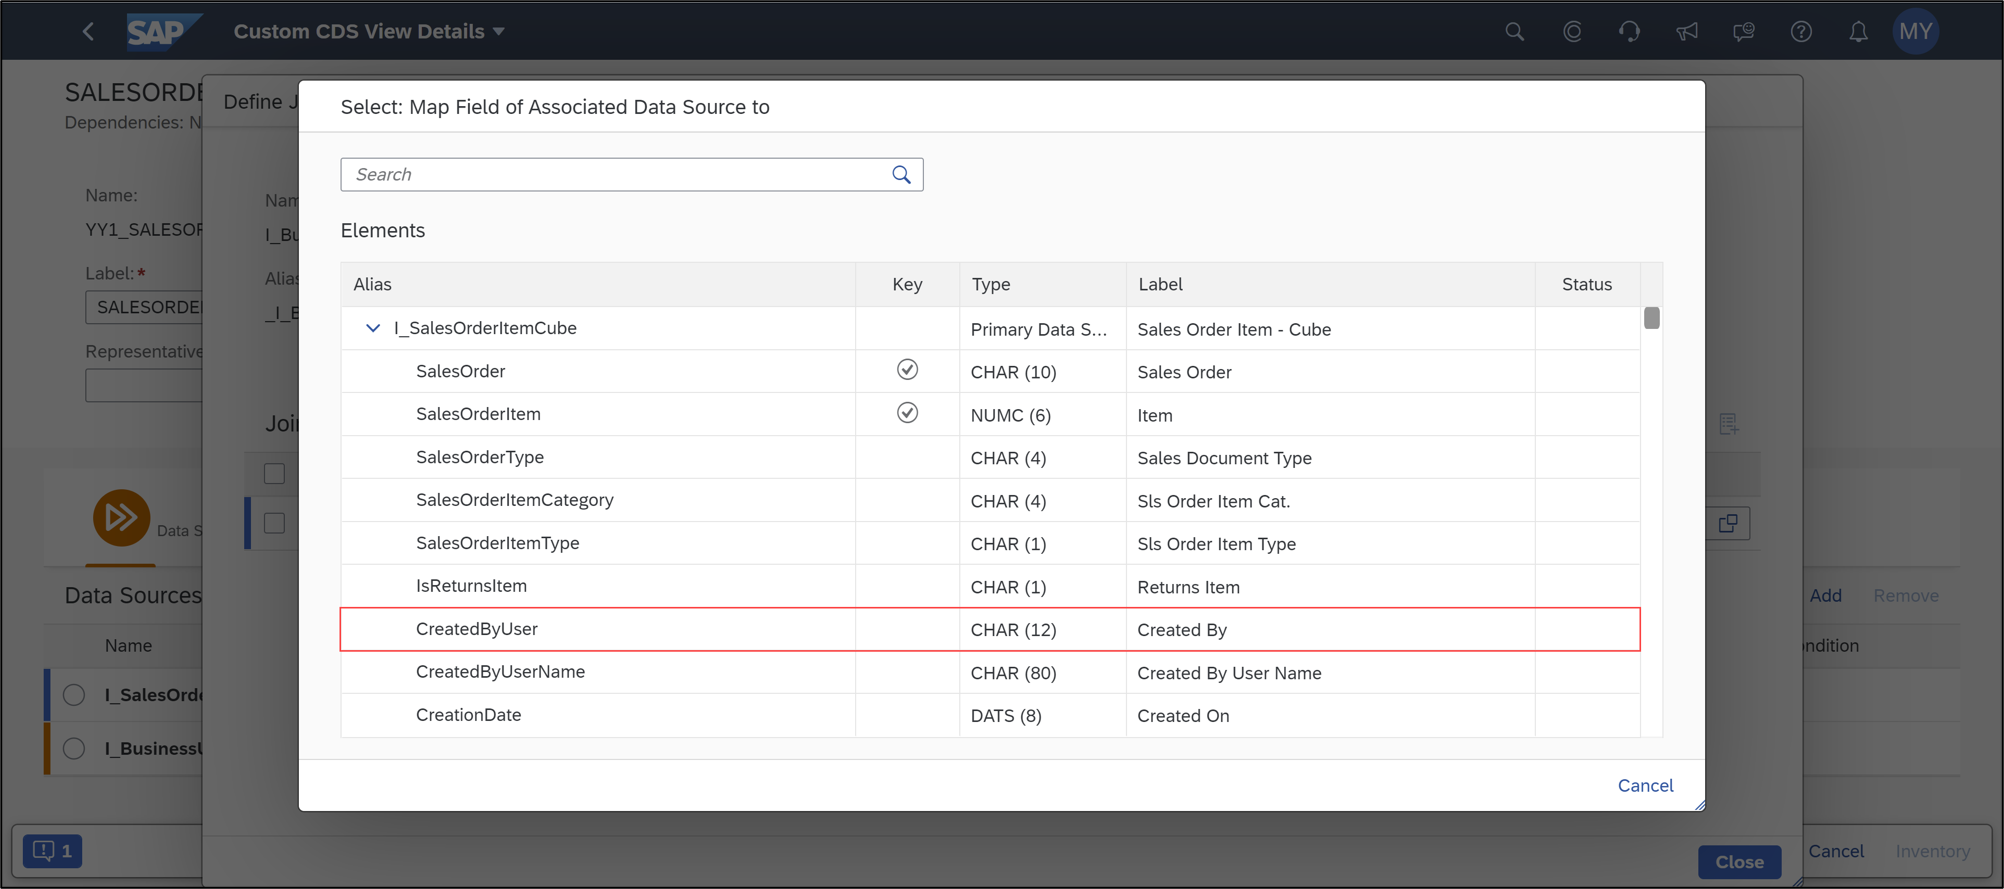 Create Custom CDS View in SAP S/4HANA Cloud